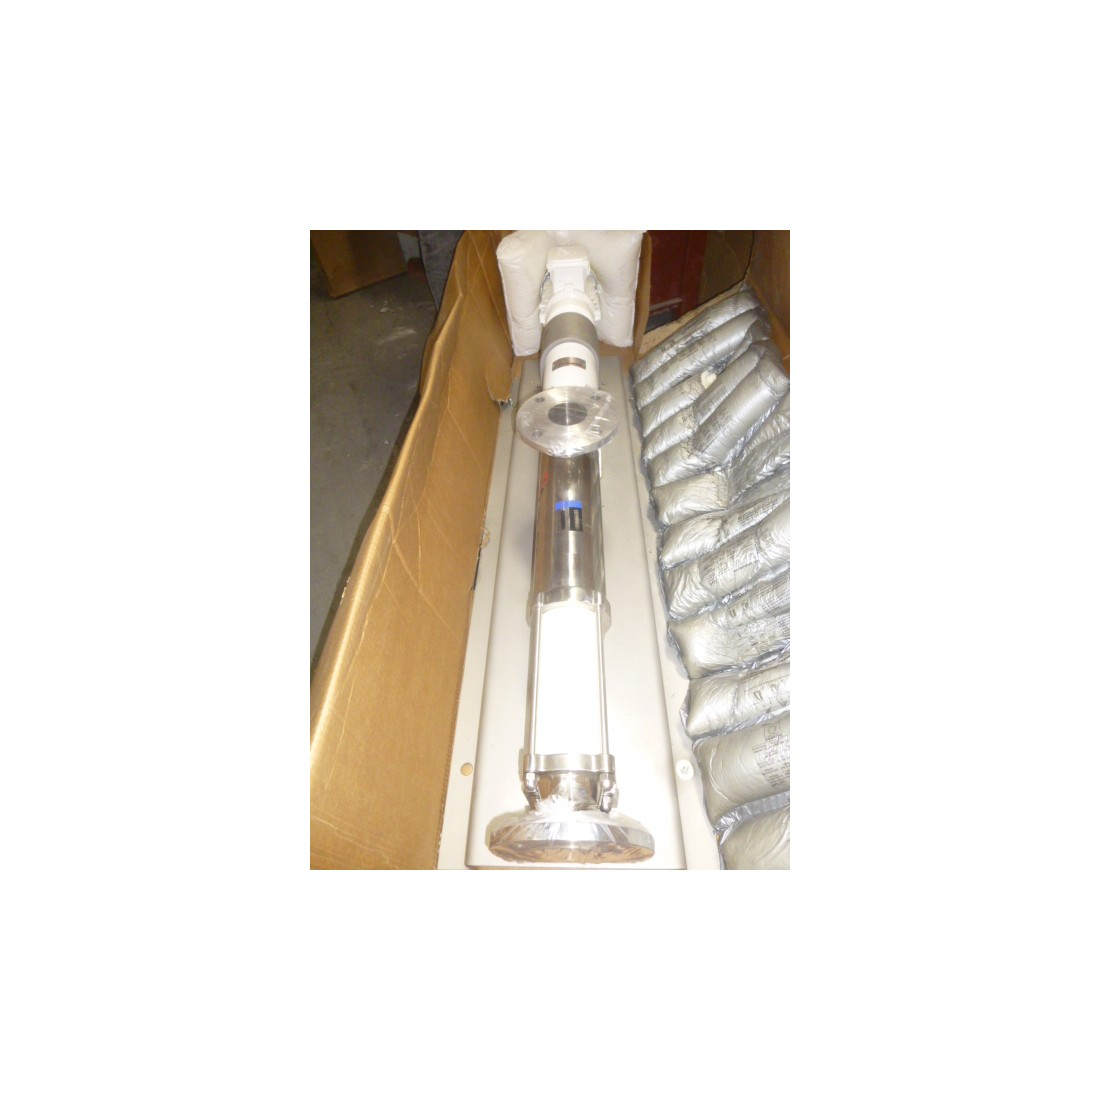 R10DA874  INOXPA stainless steel pump KS40 type - Hp 2 - Visible by appointment